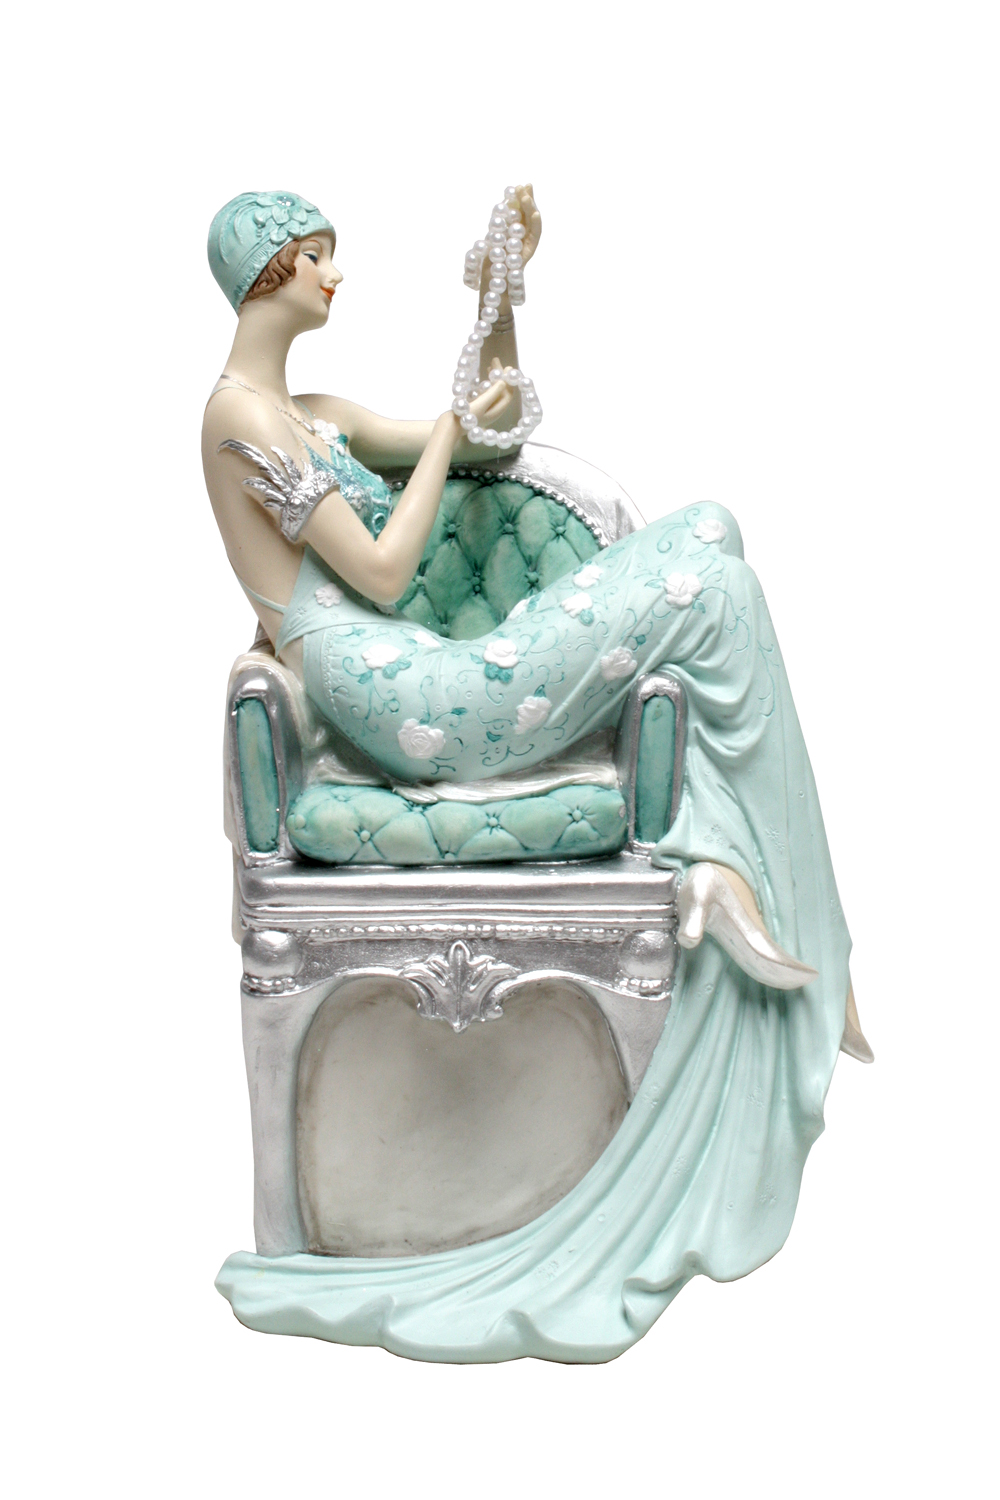 BROADWAY BELLE-LADY WITH PEARLS-TEAL (18cm x 47cm)